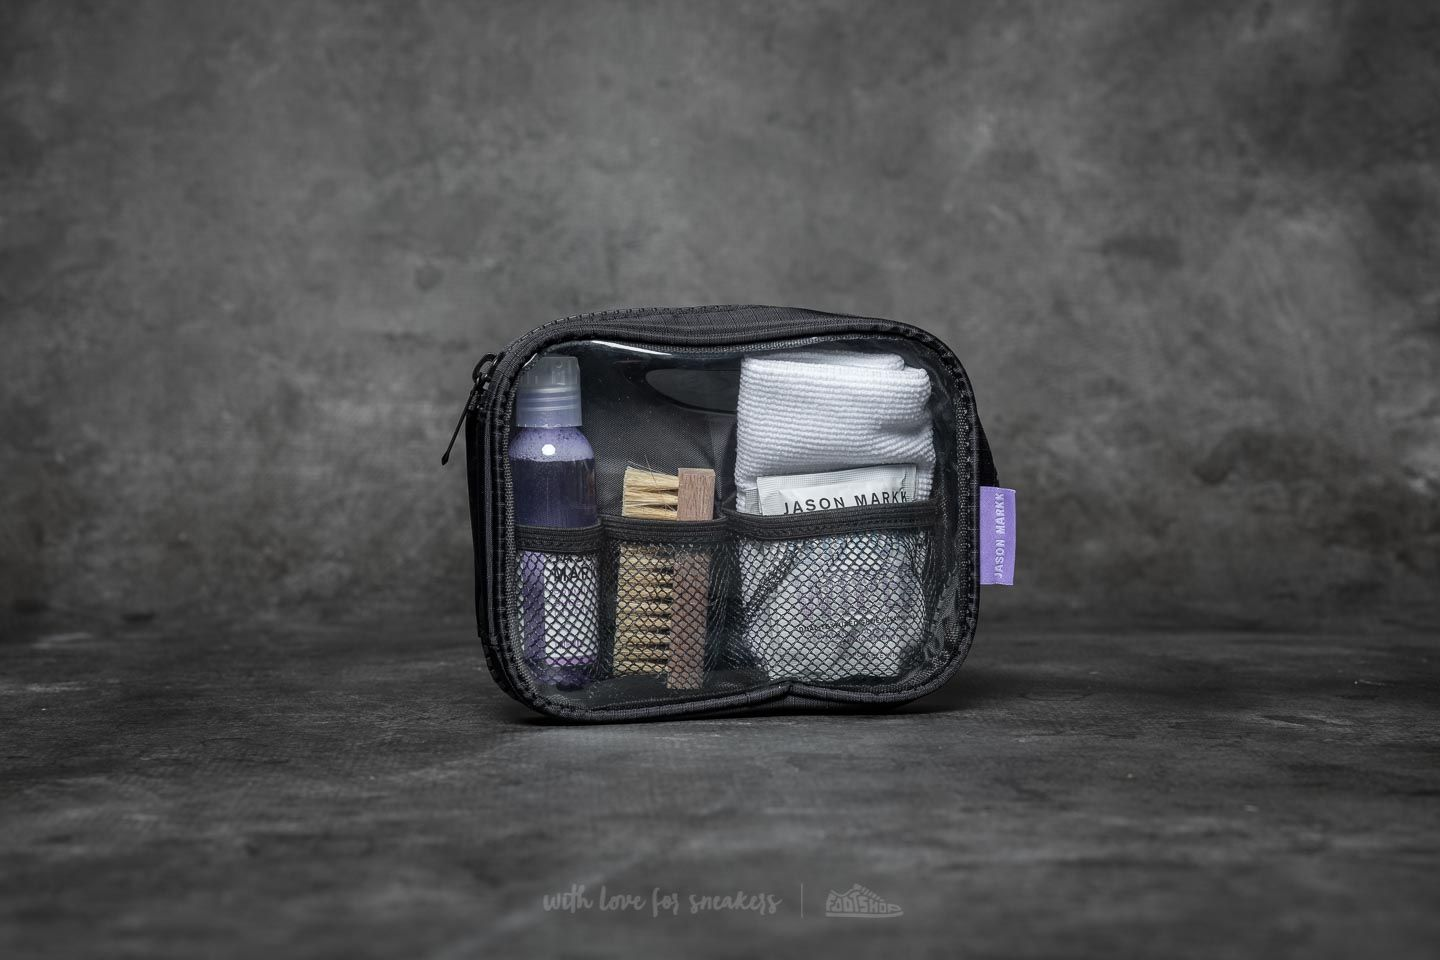 Jason Markk Travel Kit Black - 21204